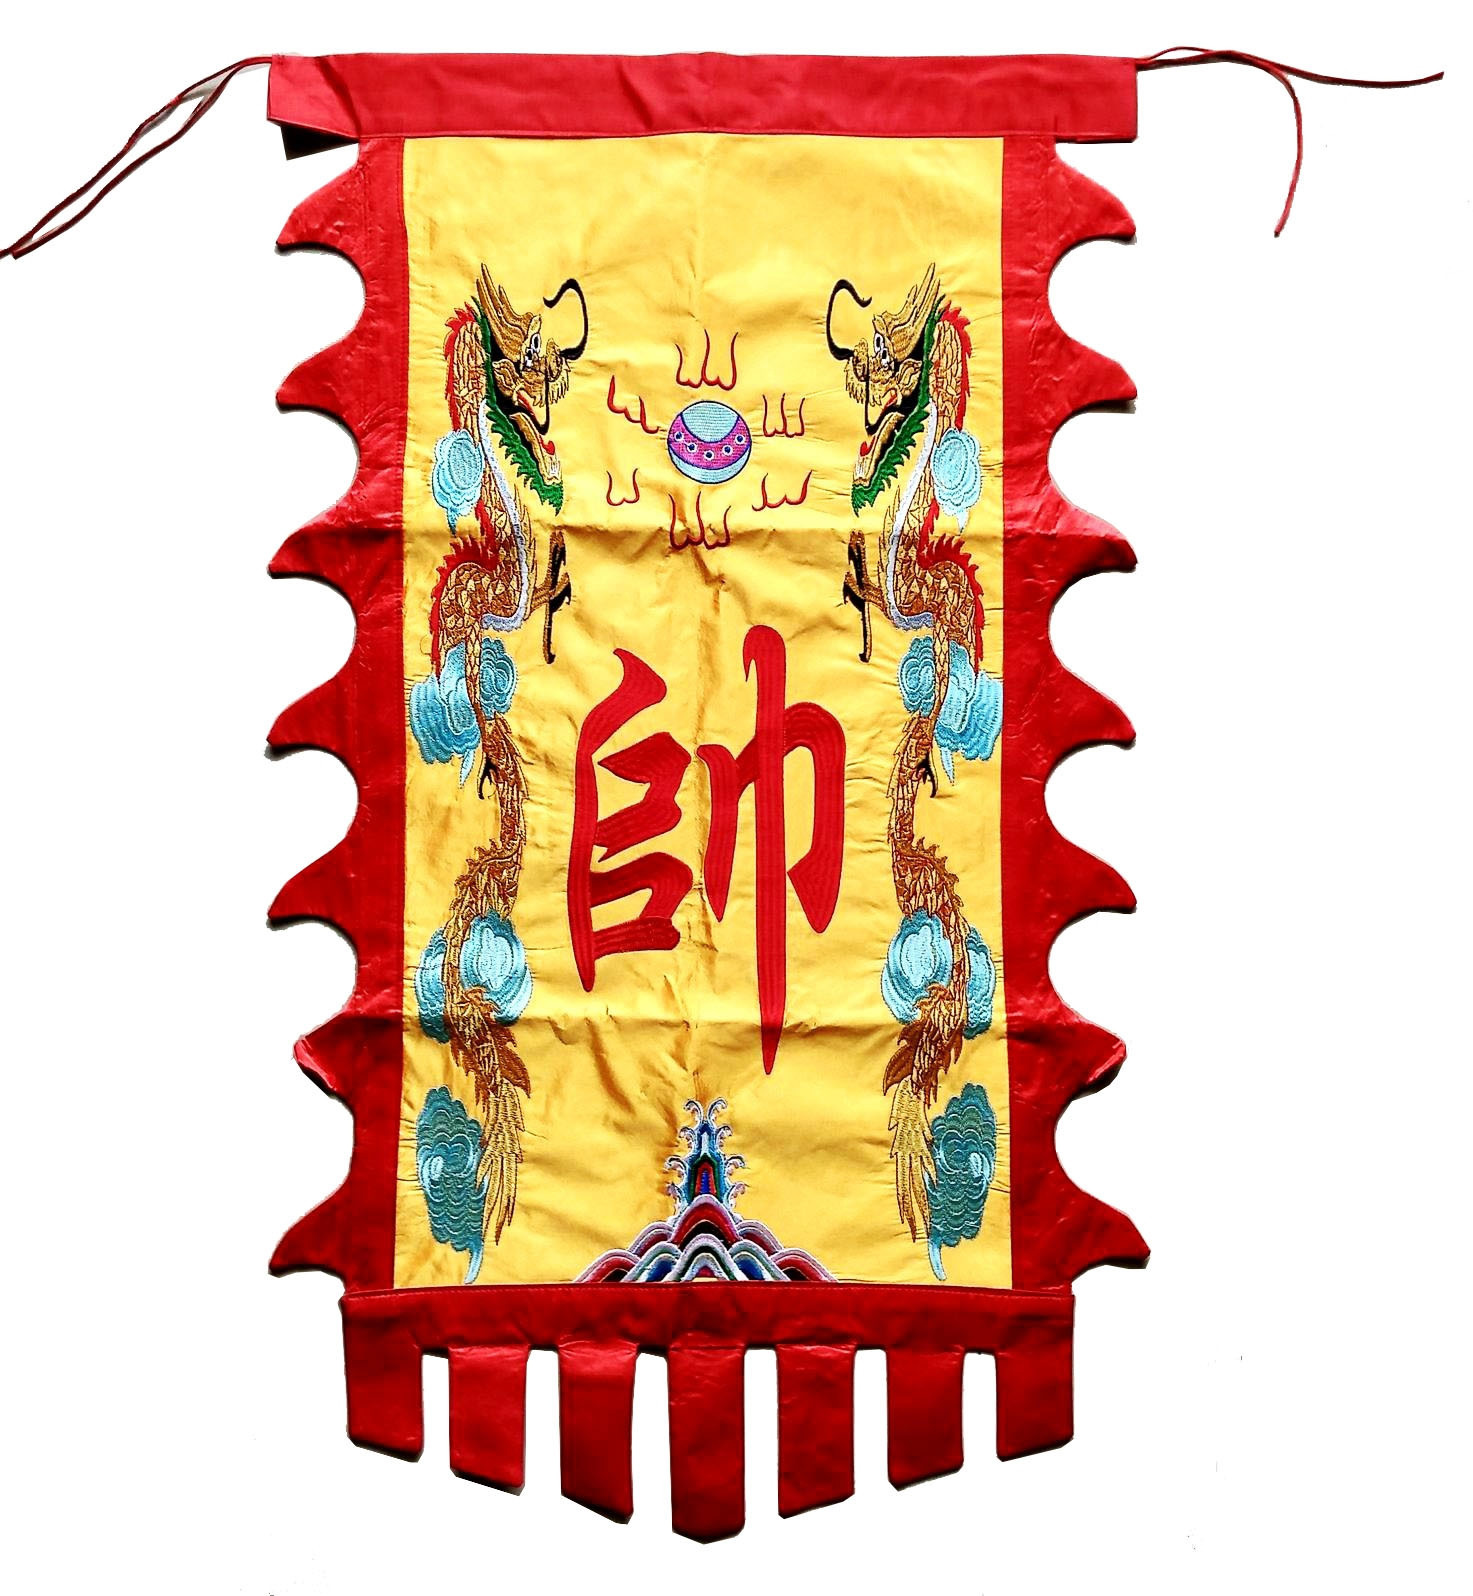 Embroidery Club demonstration competition flag - SHUAI